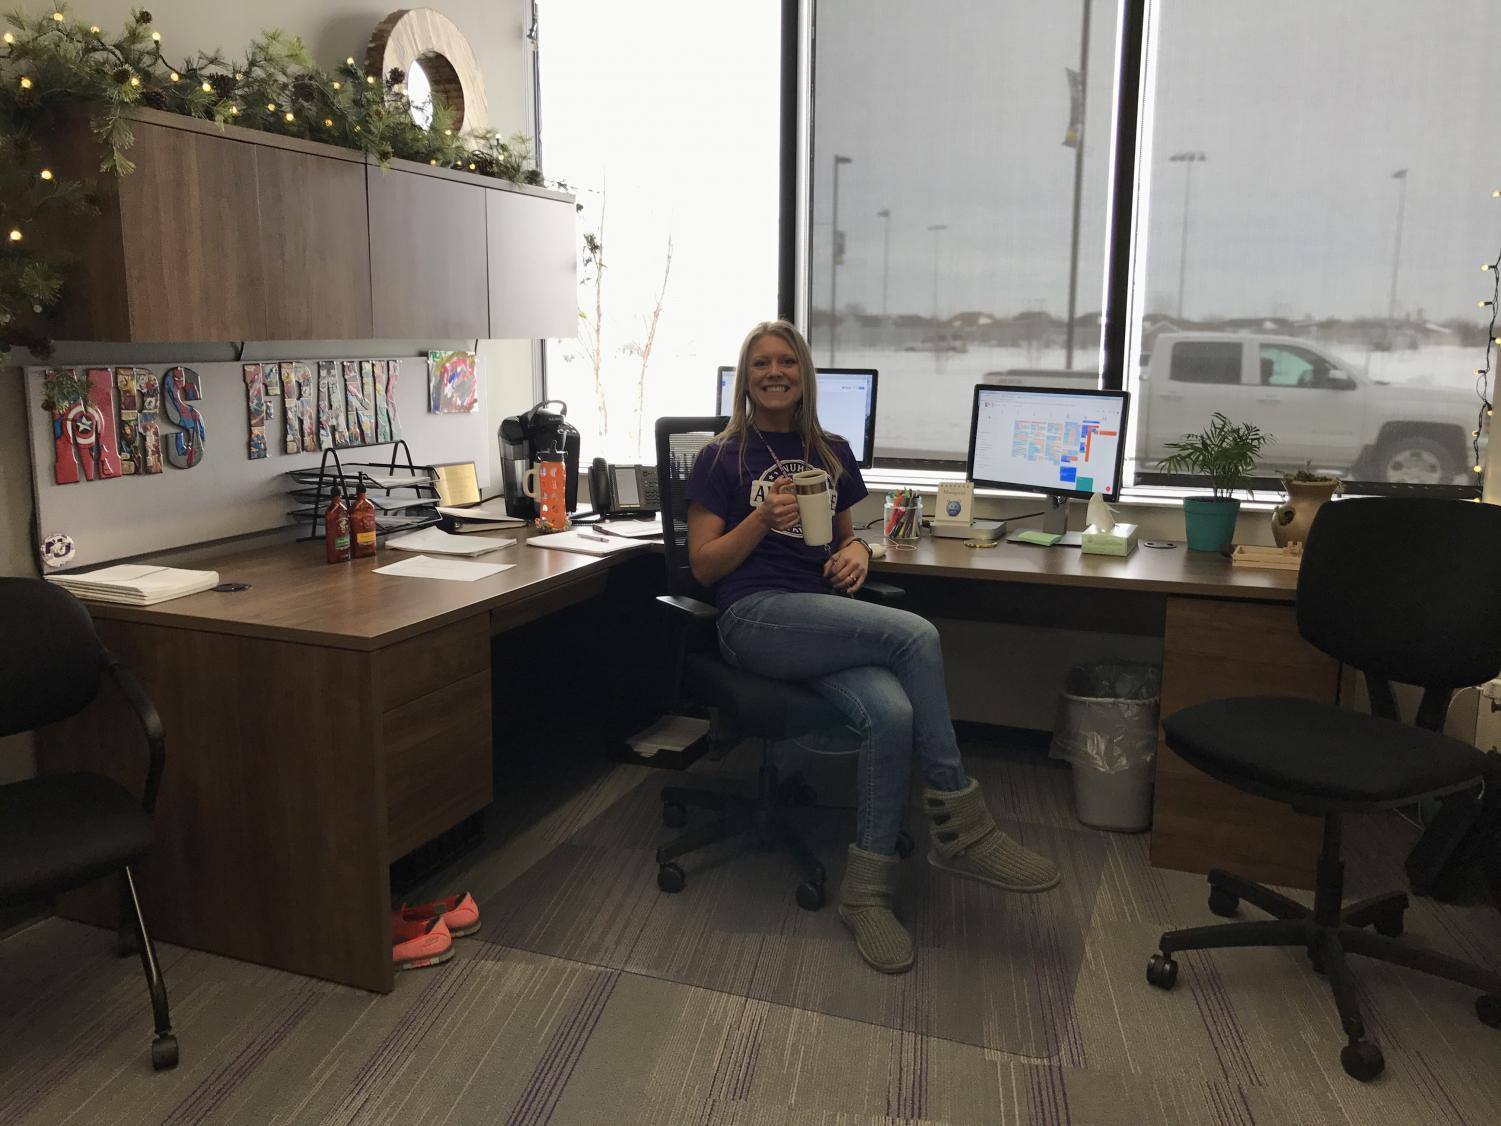 Mrs. Frank sits in her cozy office drinking coffee.